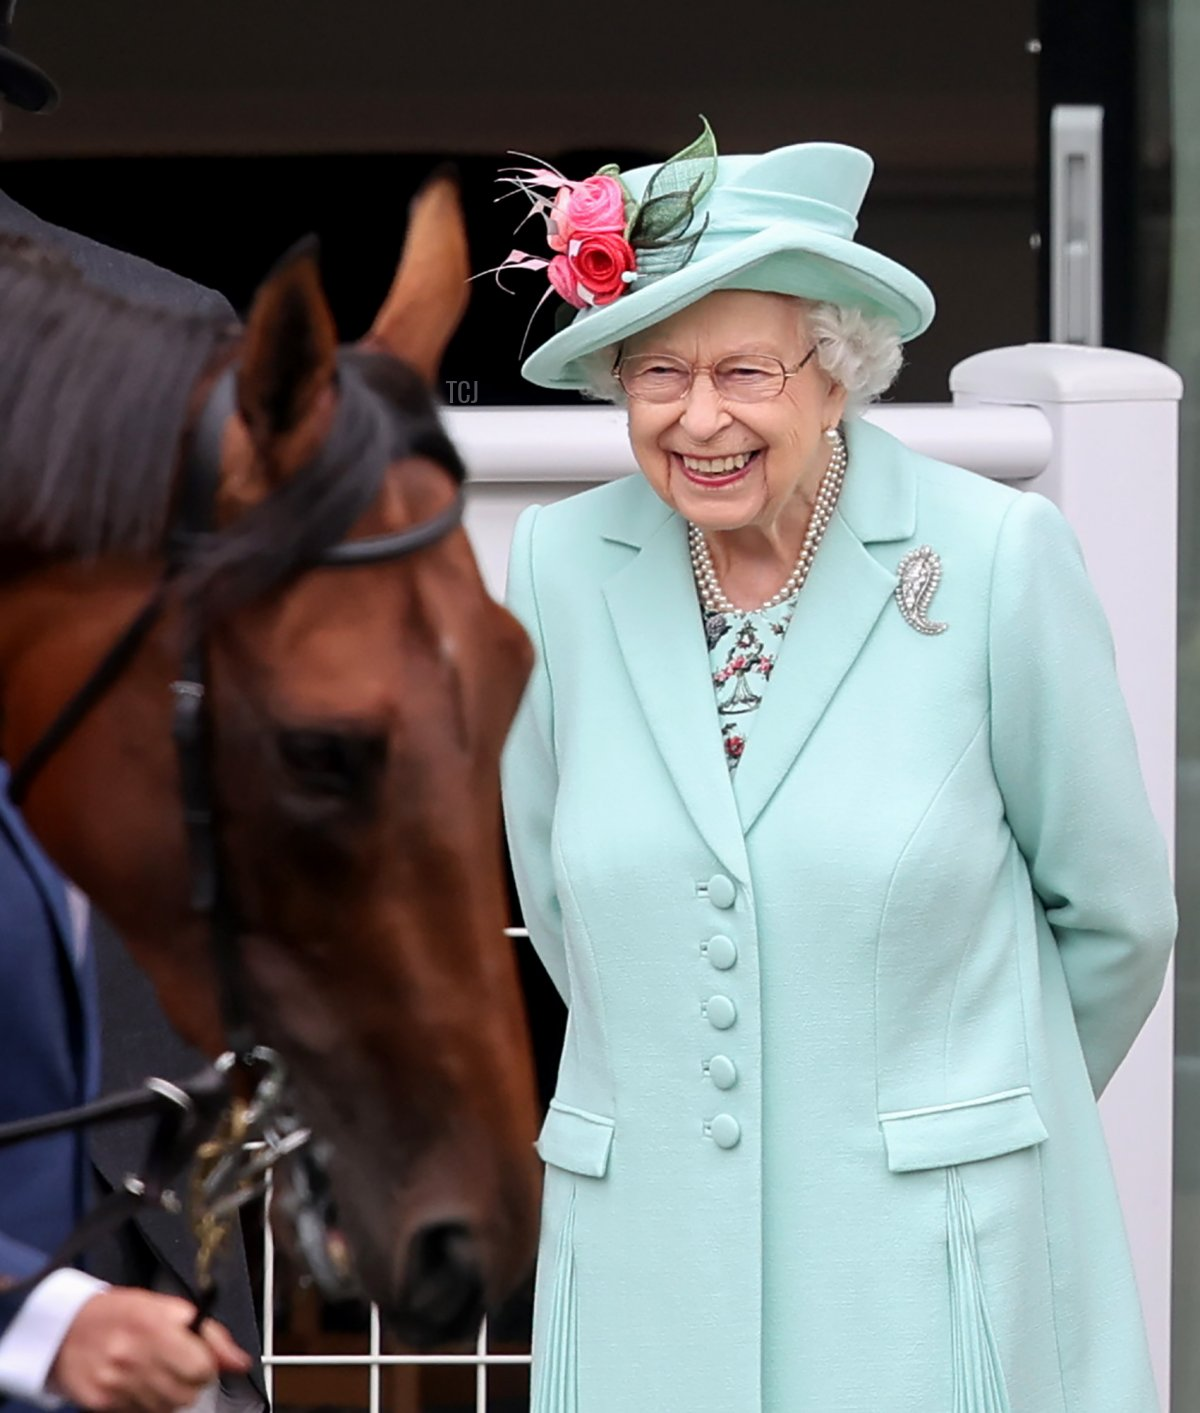 Queen Elizabeth II attends Royal Ascot 2021 at Ascot Racecourse on June 19, 2021 in Ascot, England